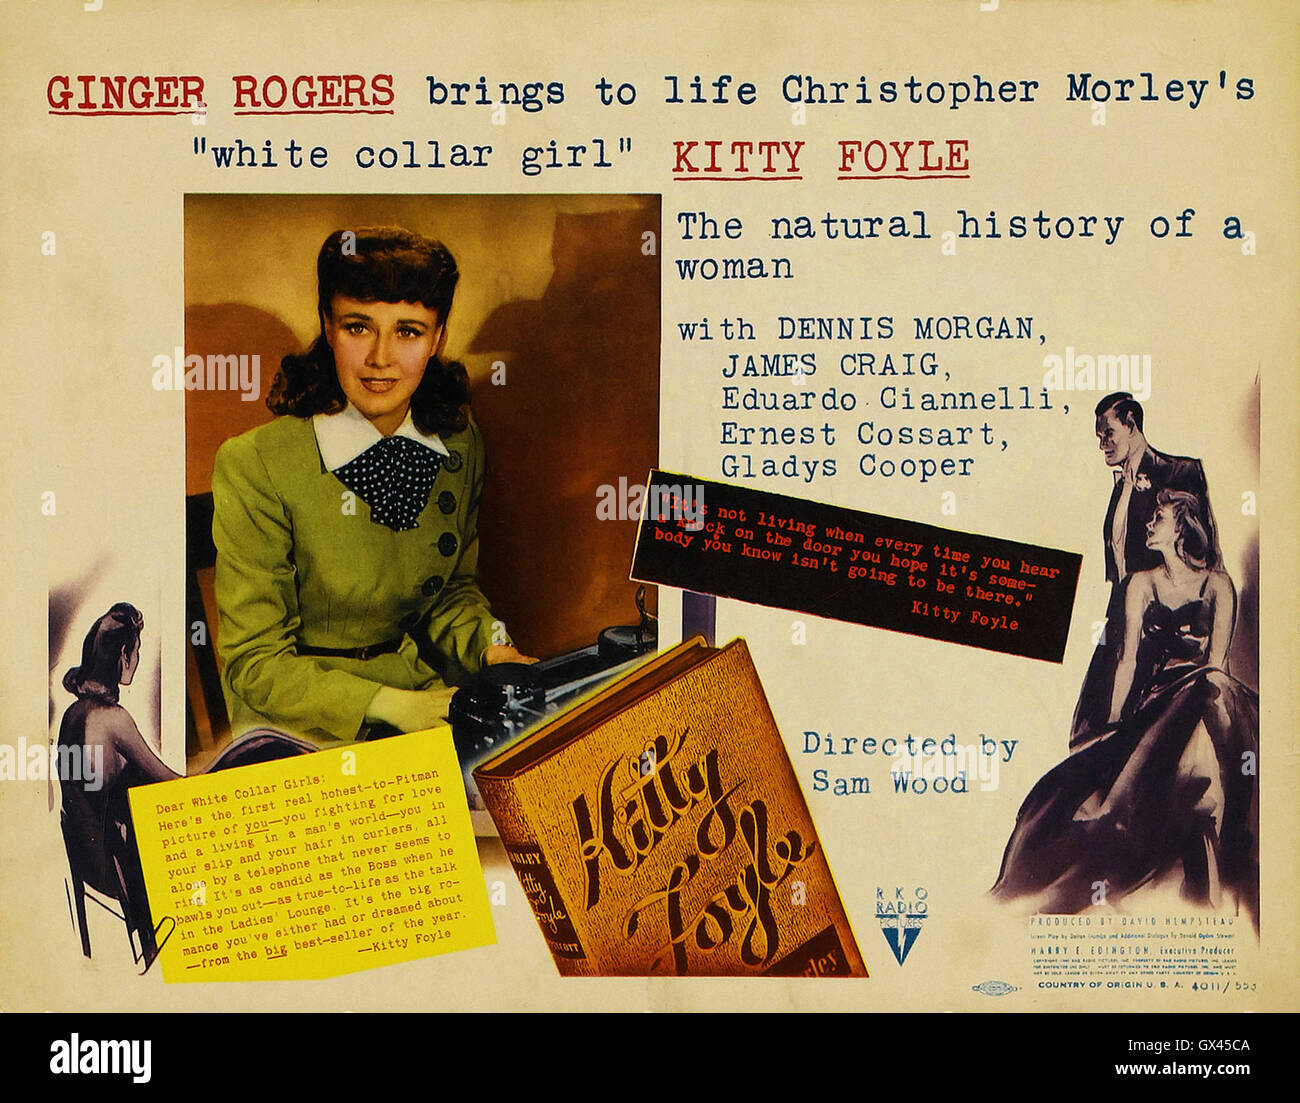 Ginger Rogers, Dennis Morgan, James Craig - KITTY FOYLE - 1940.  Directed by Sam Wood - Movie Poster - Stock Image